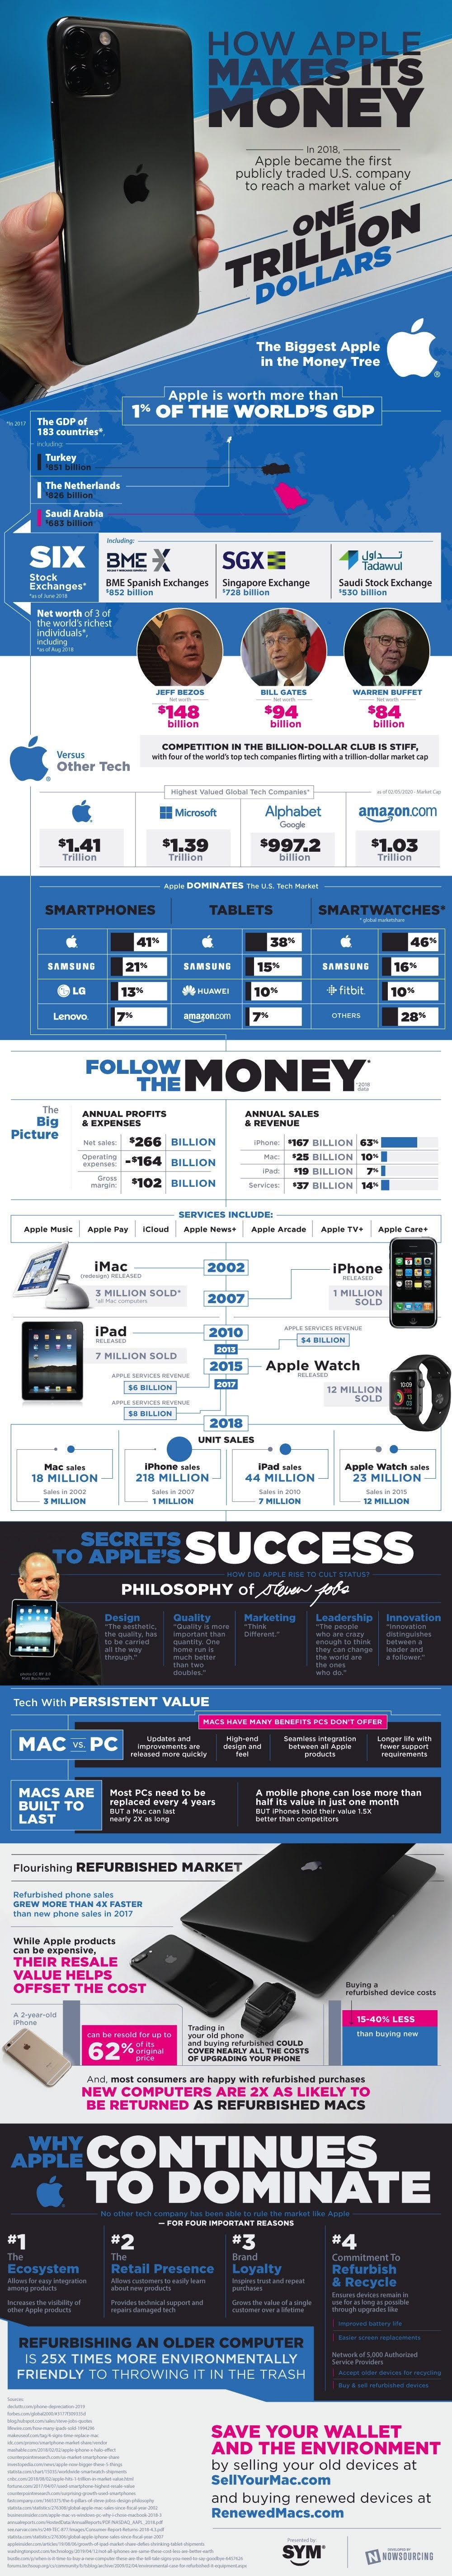 The Secret To Apple's Money Success #infographic